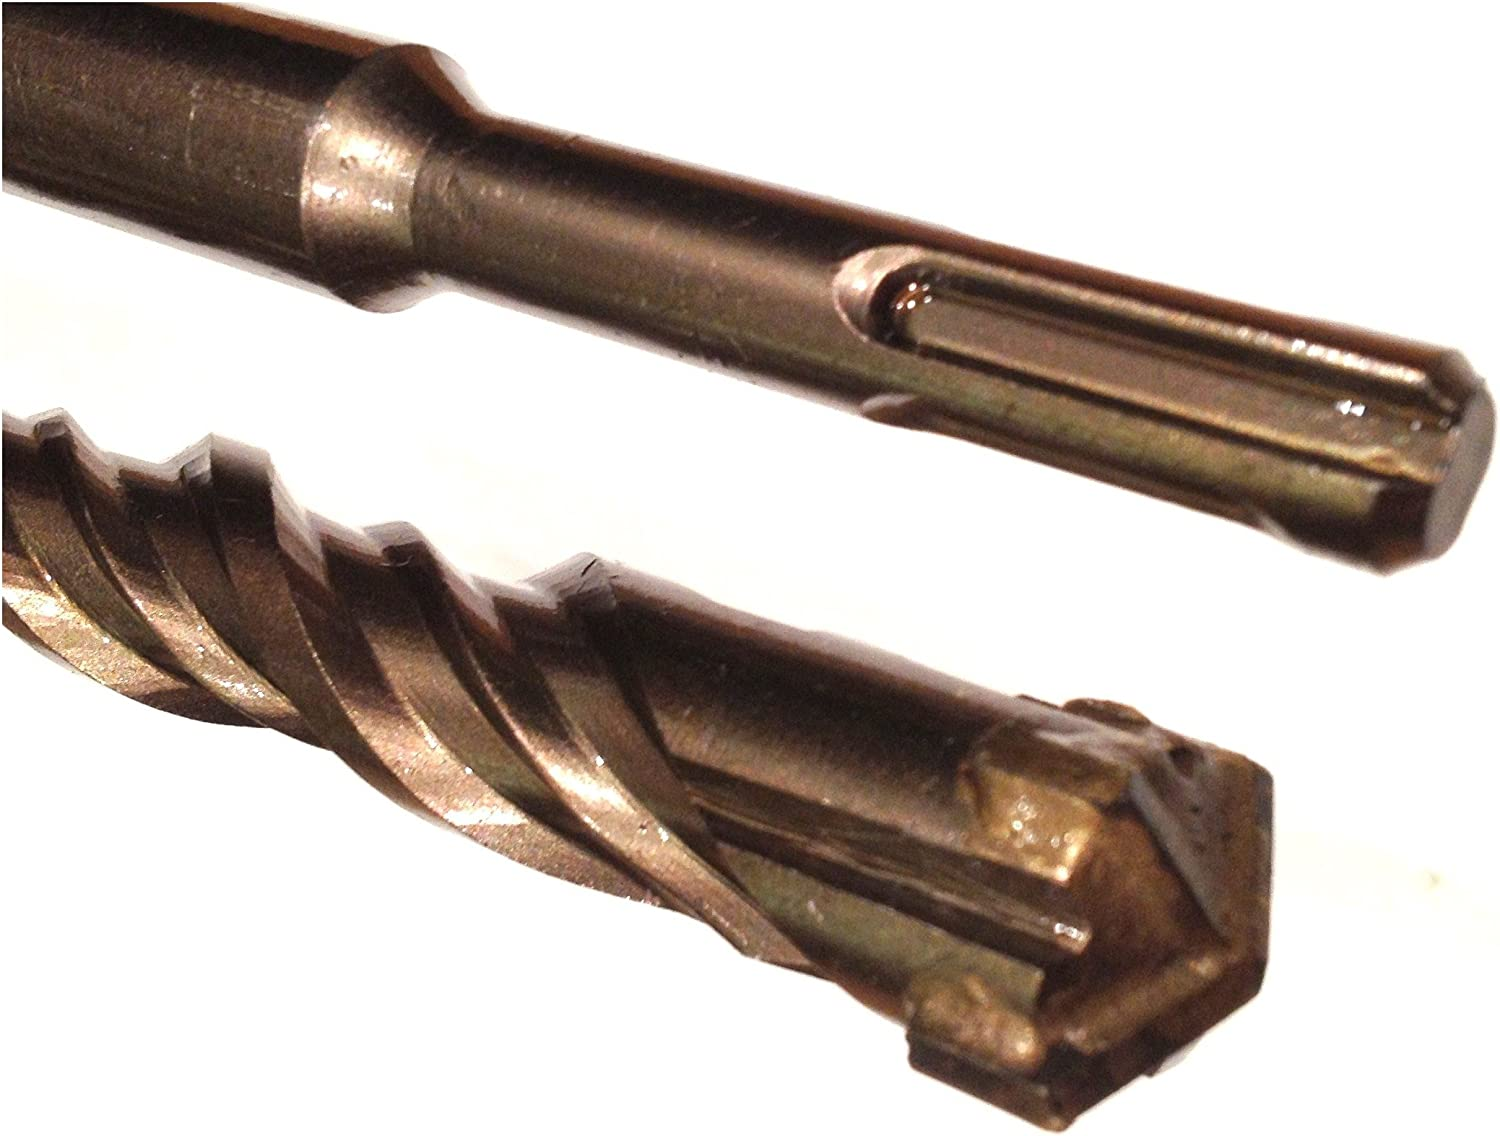 by Yato YT-4219 Yato professional SDS Plus drill bit 14mmx460mm long X tip cross tip